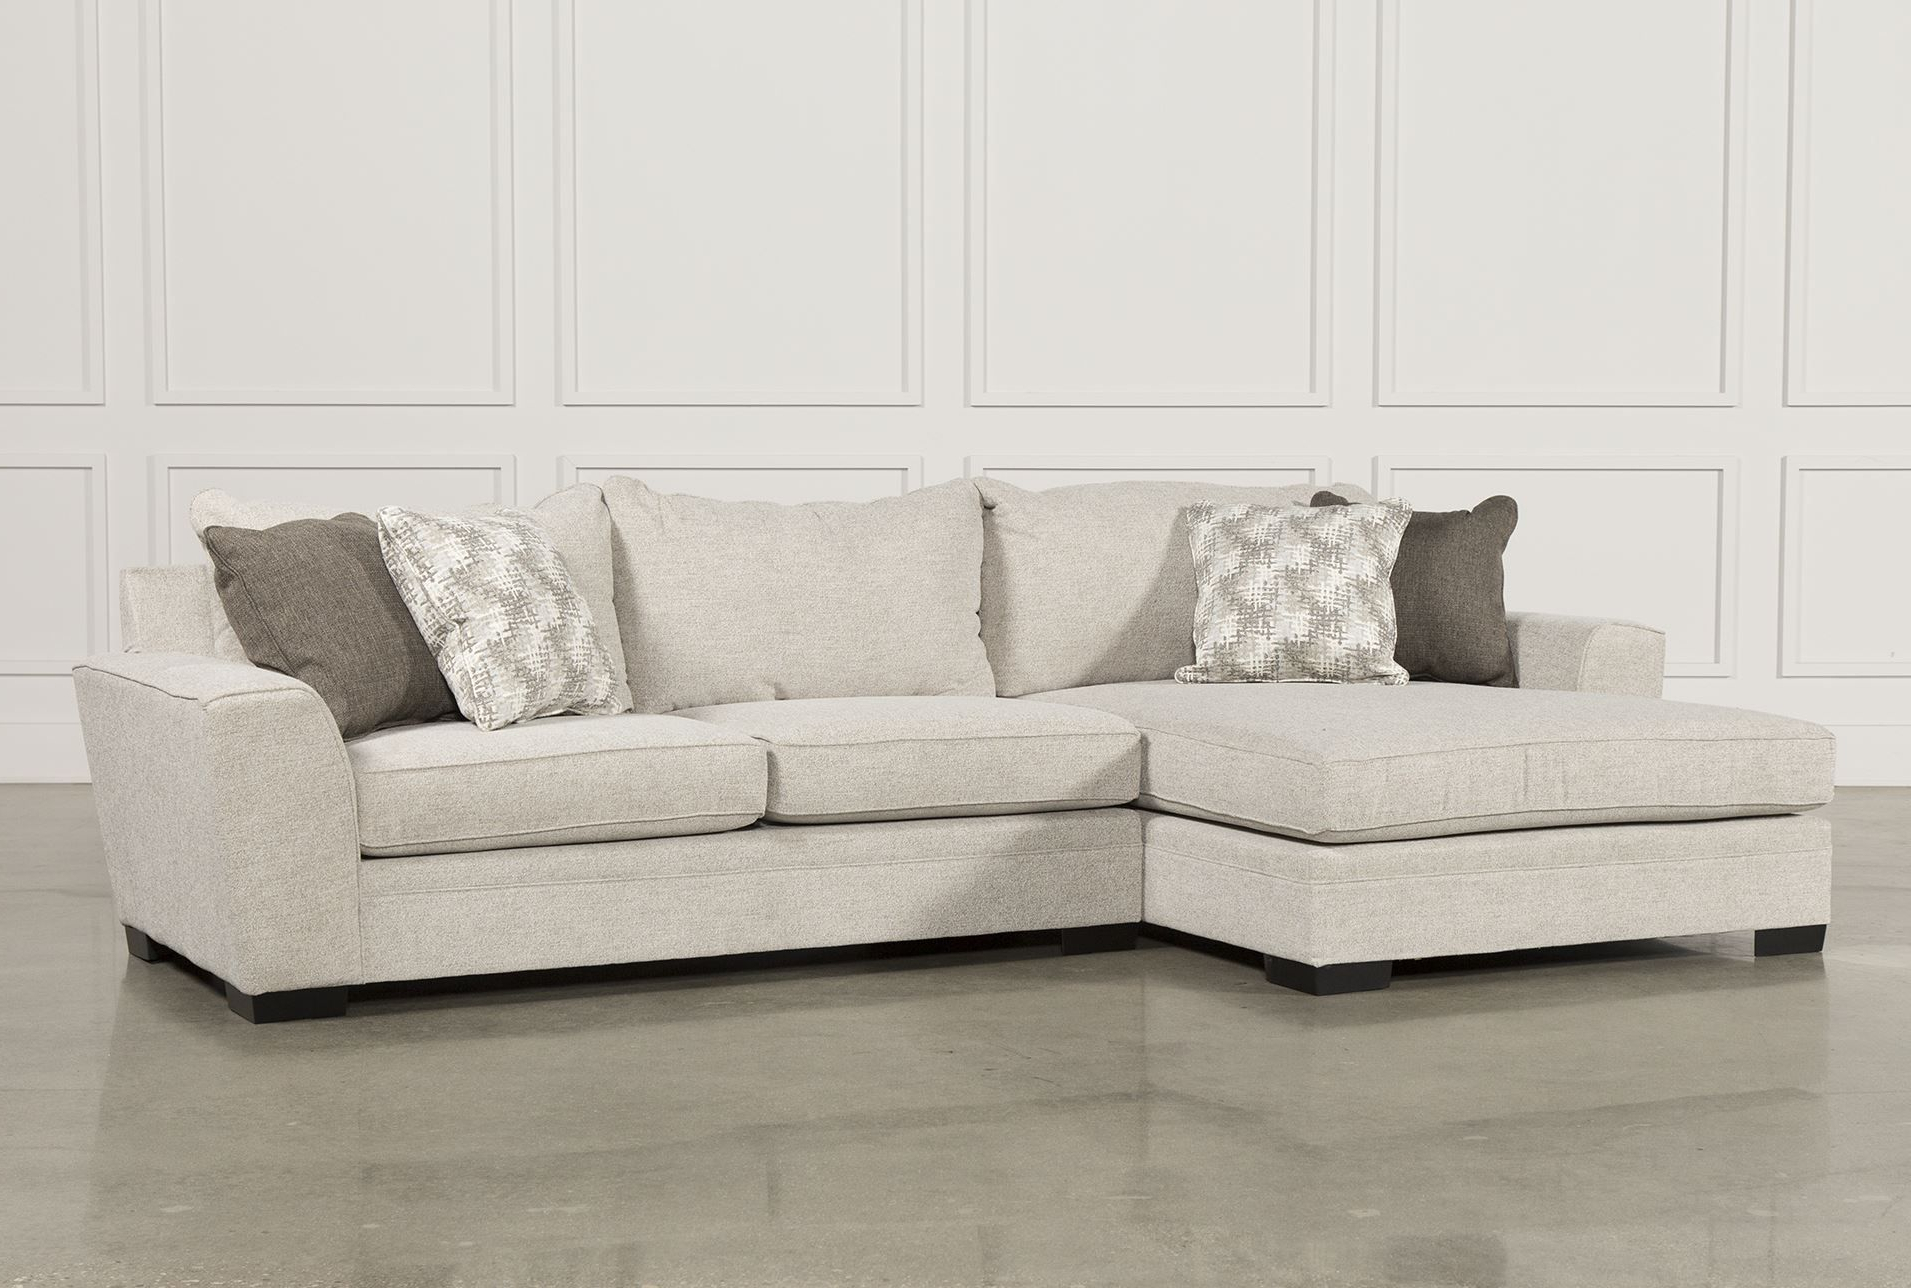 Delano 2 Piece Sectional W/laf Oversized Chaise (Gallery 5 of 20)